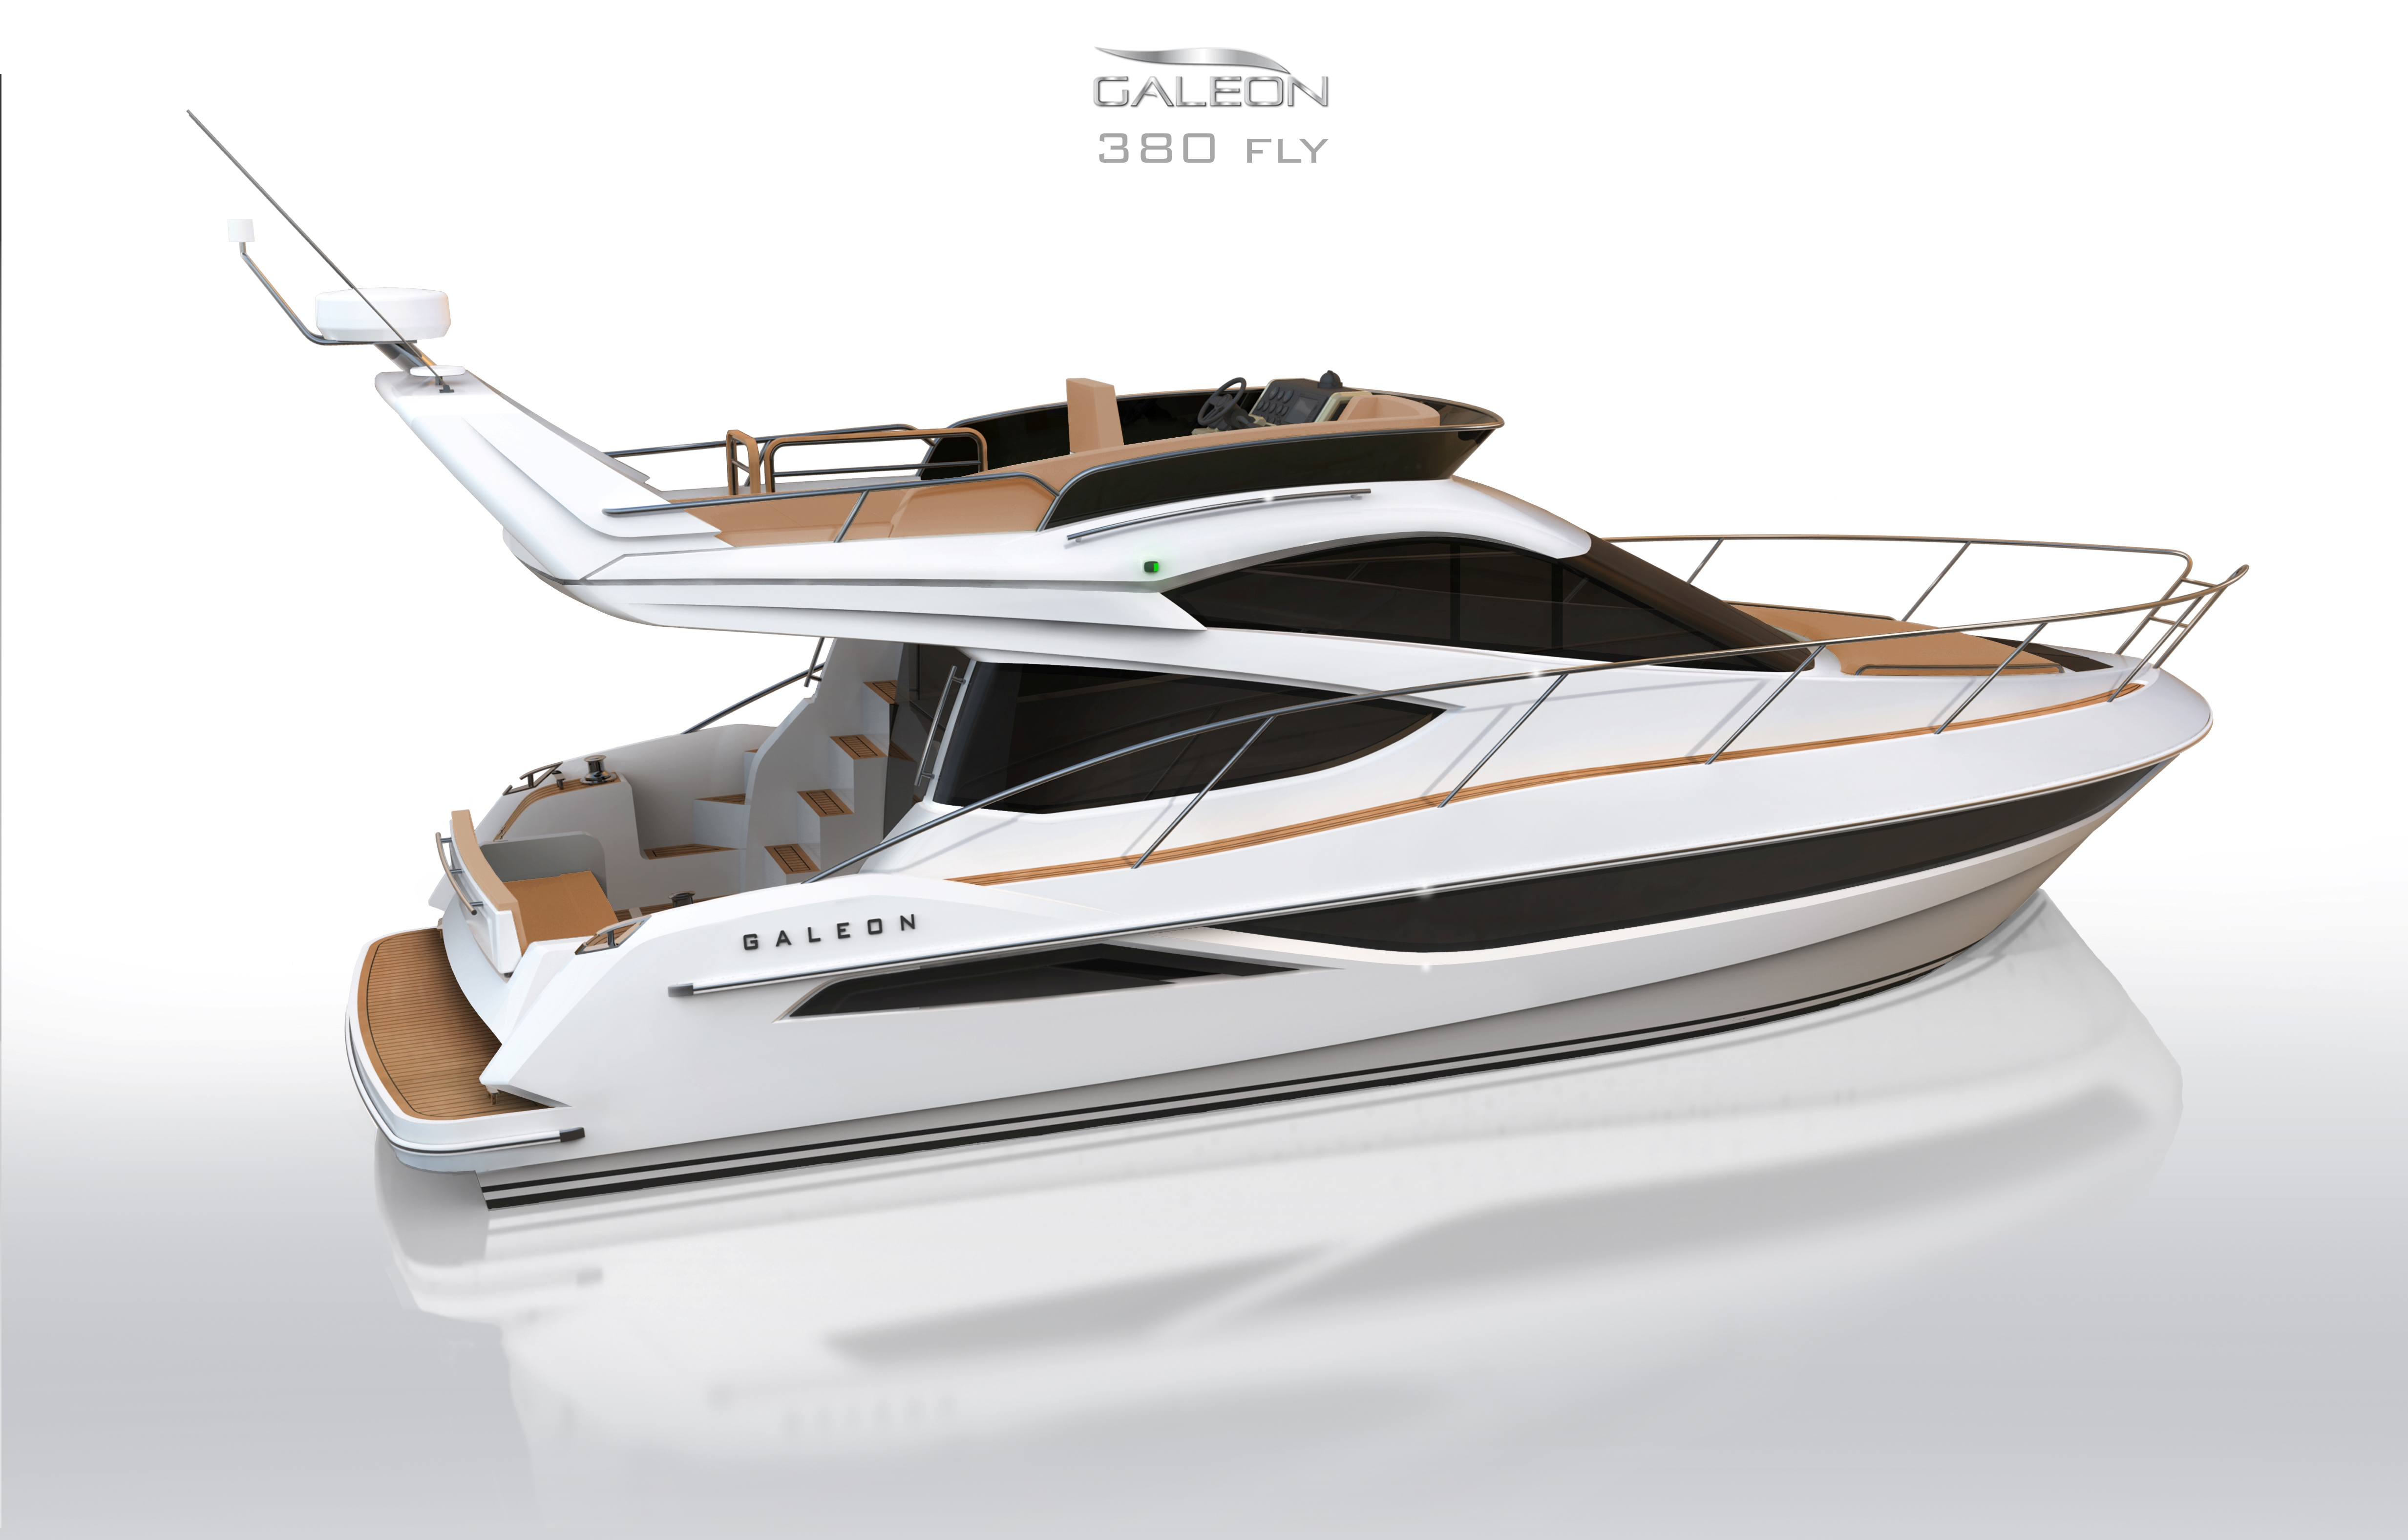 motor yacht galeon 380 fly rear view yacht charter